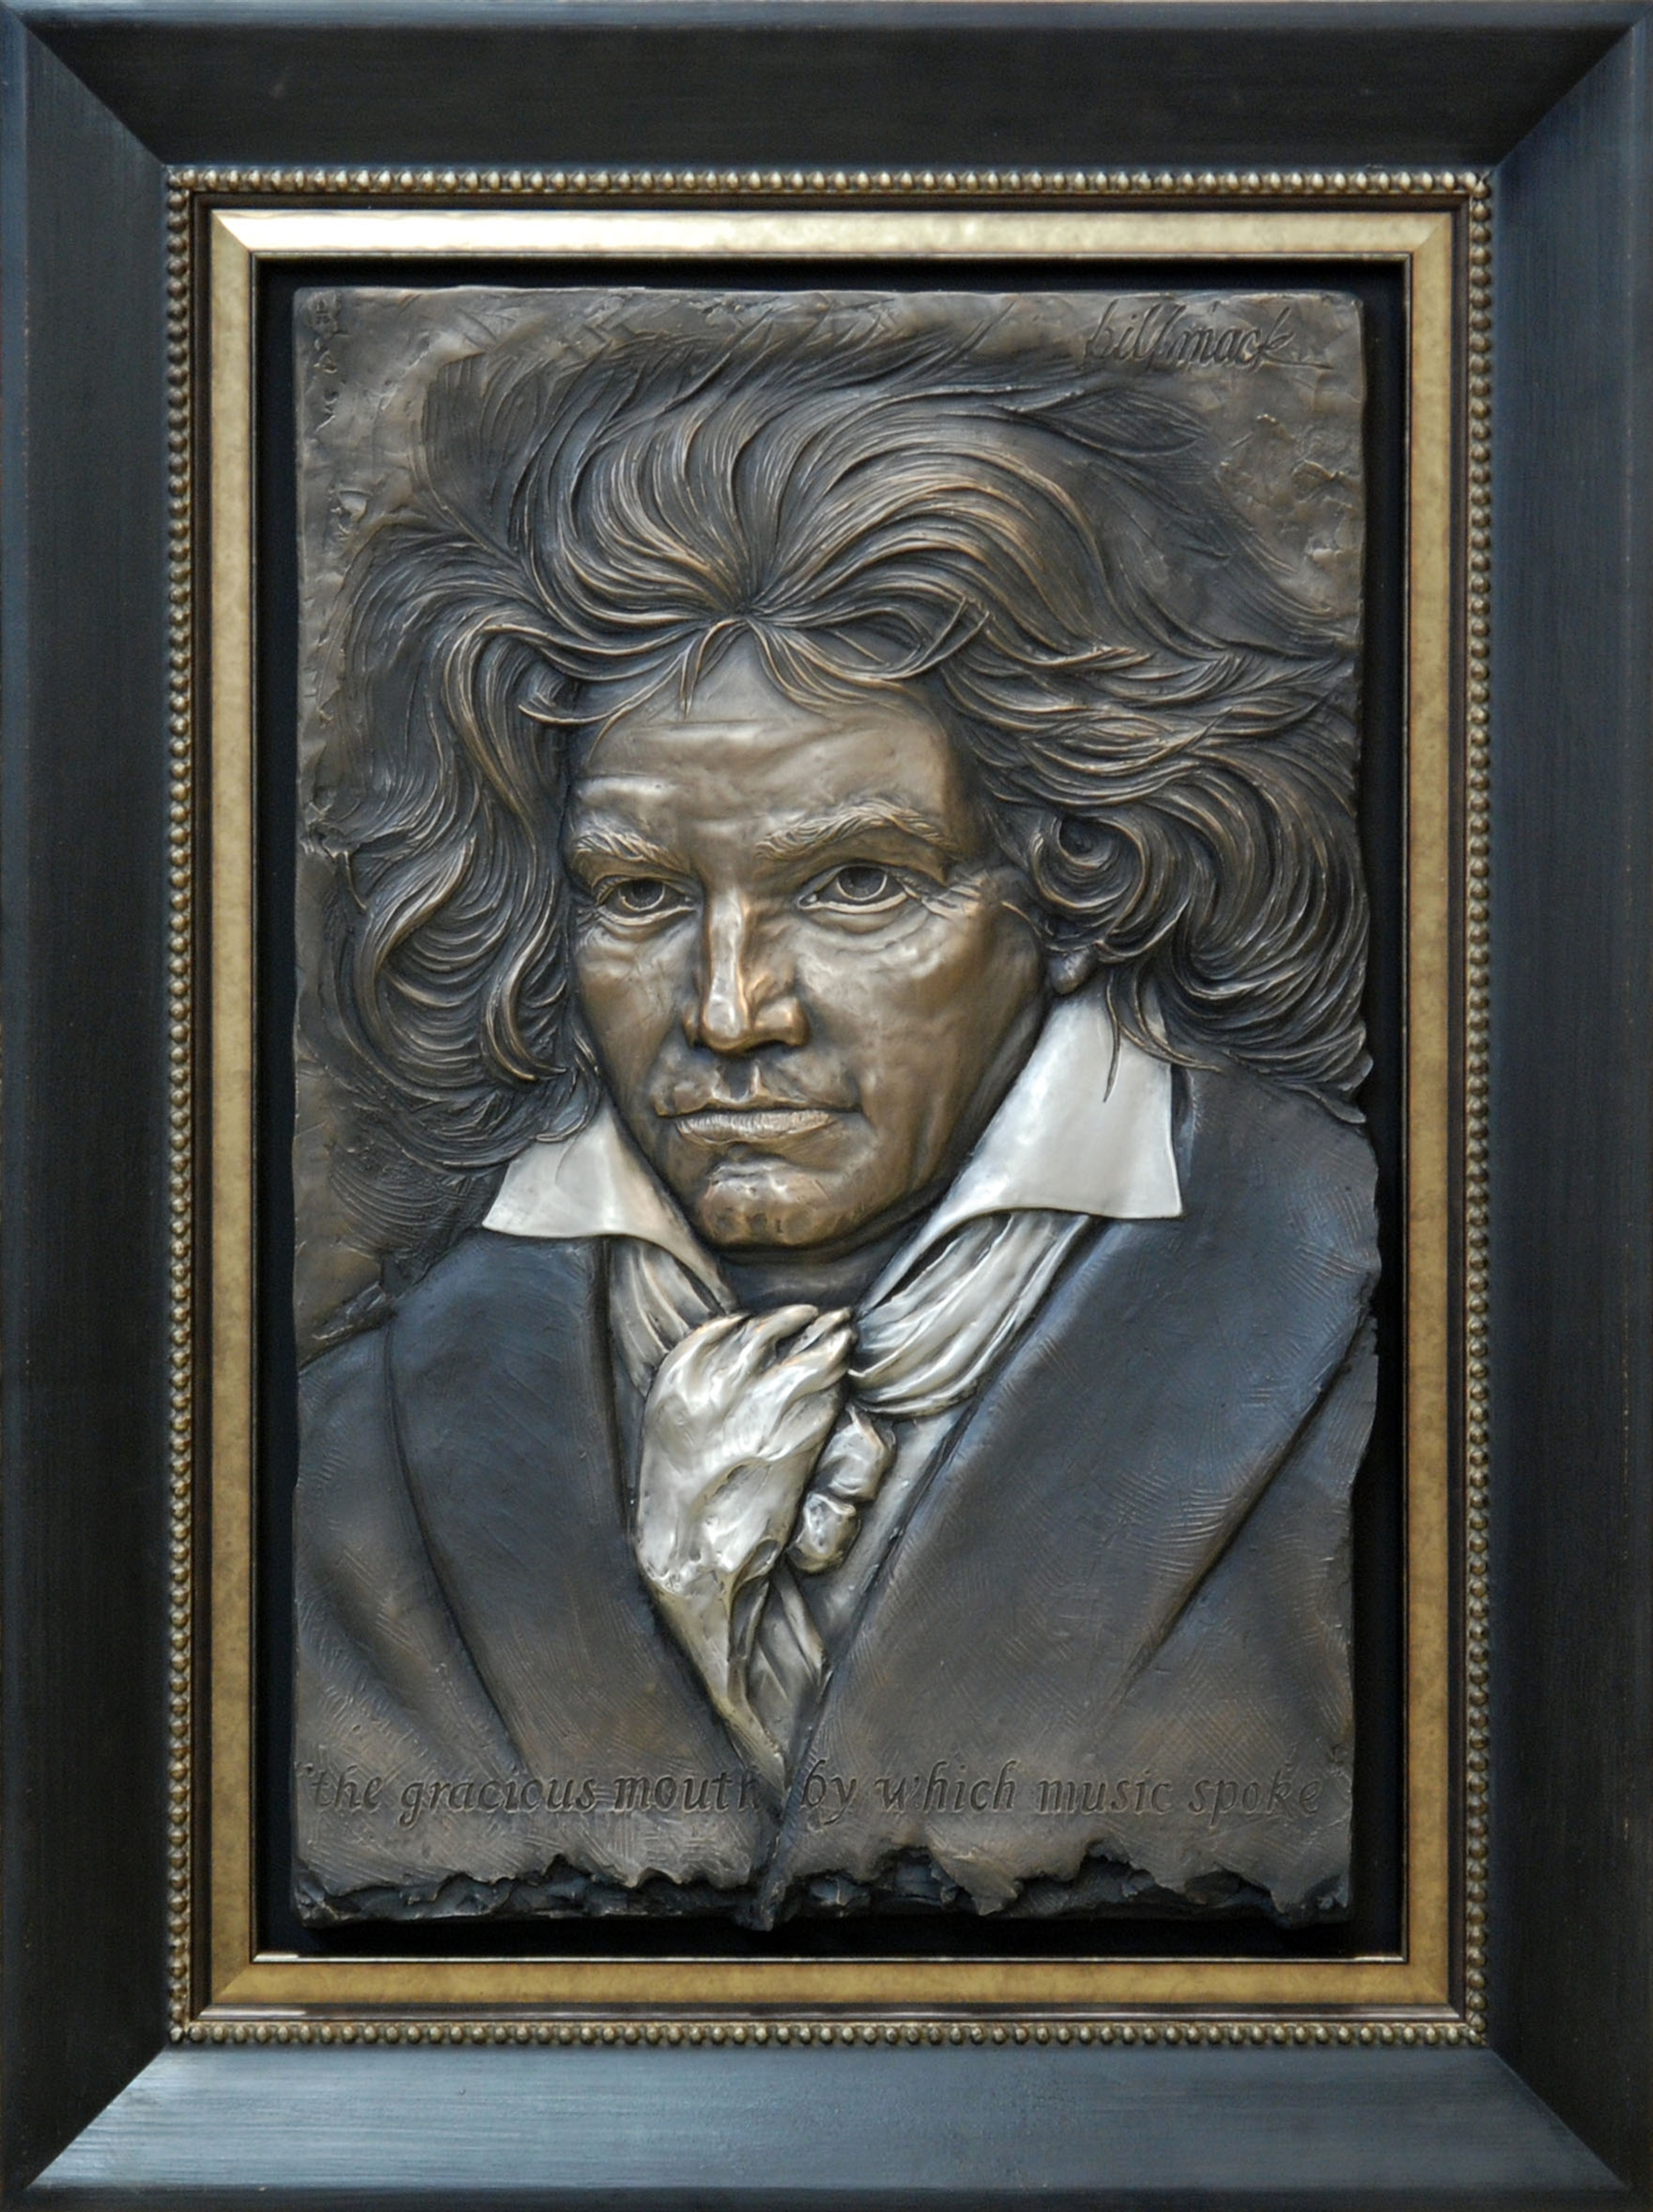 Beethoven by Bill Mack